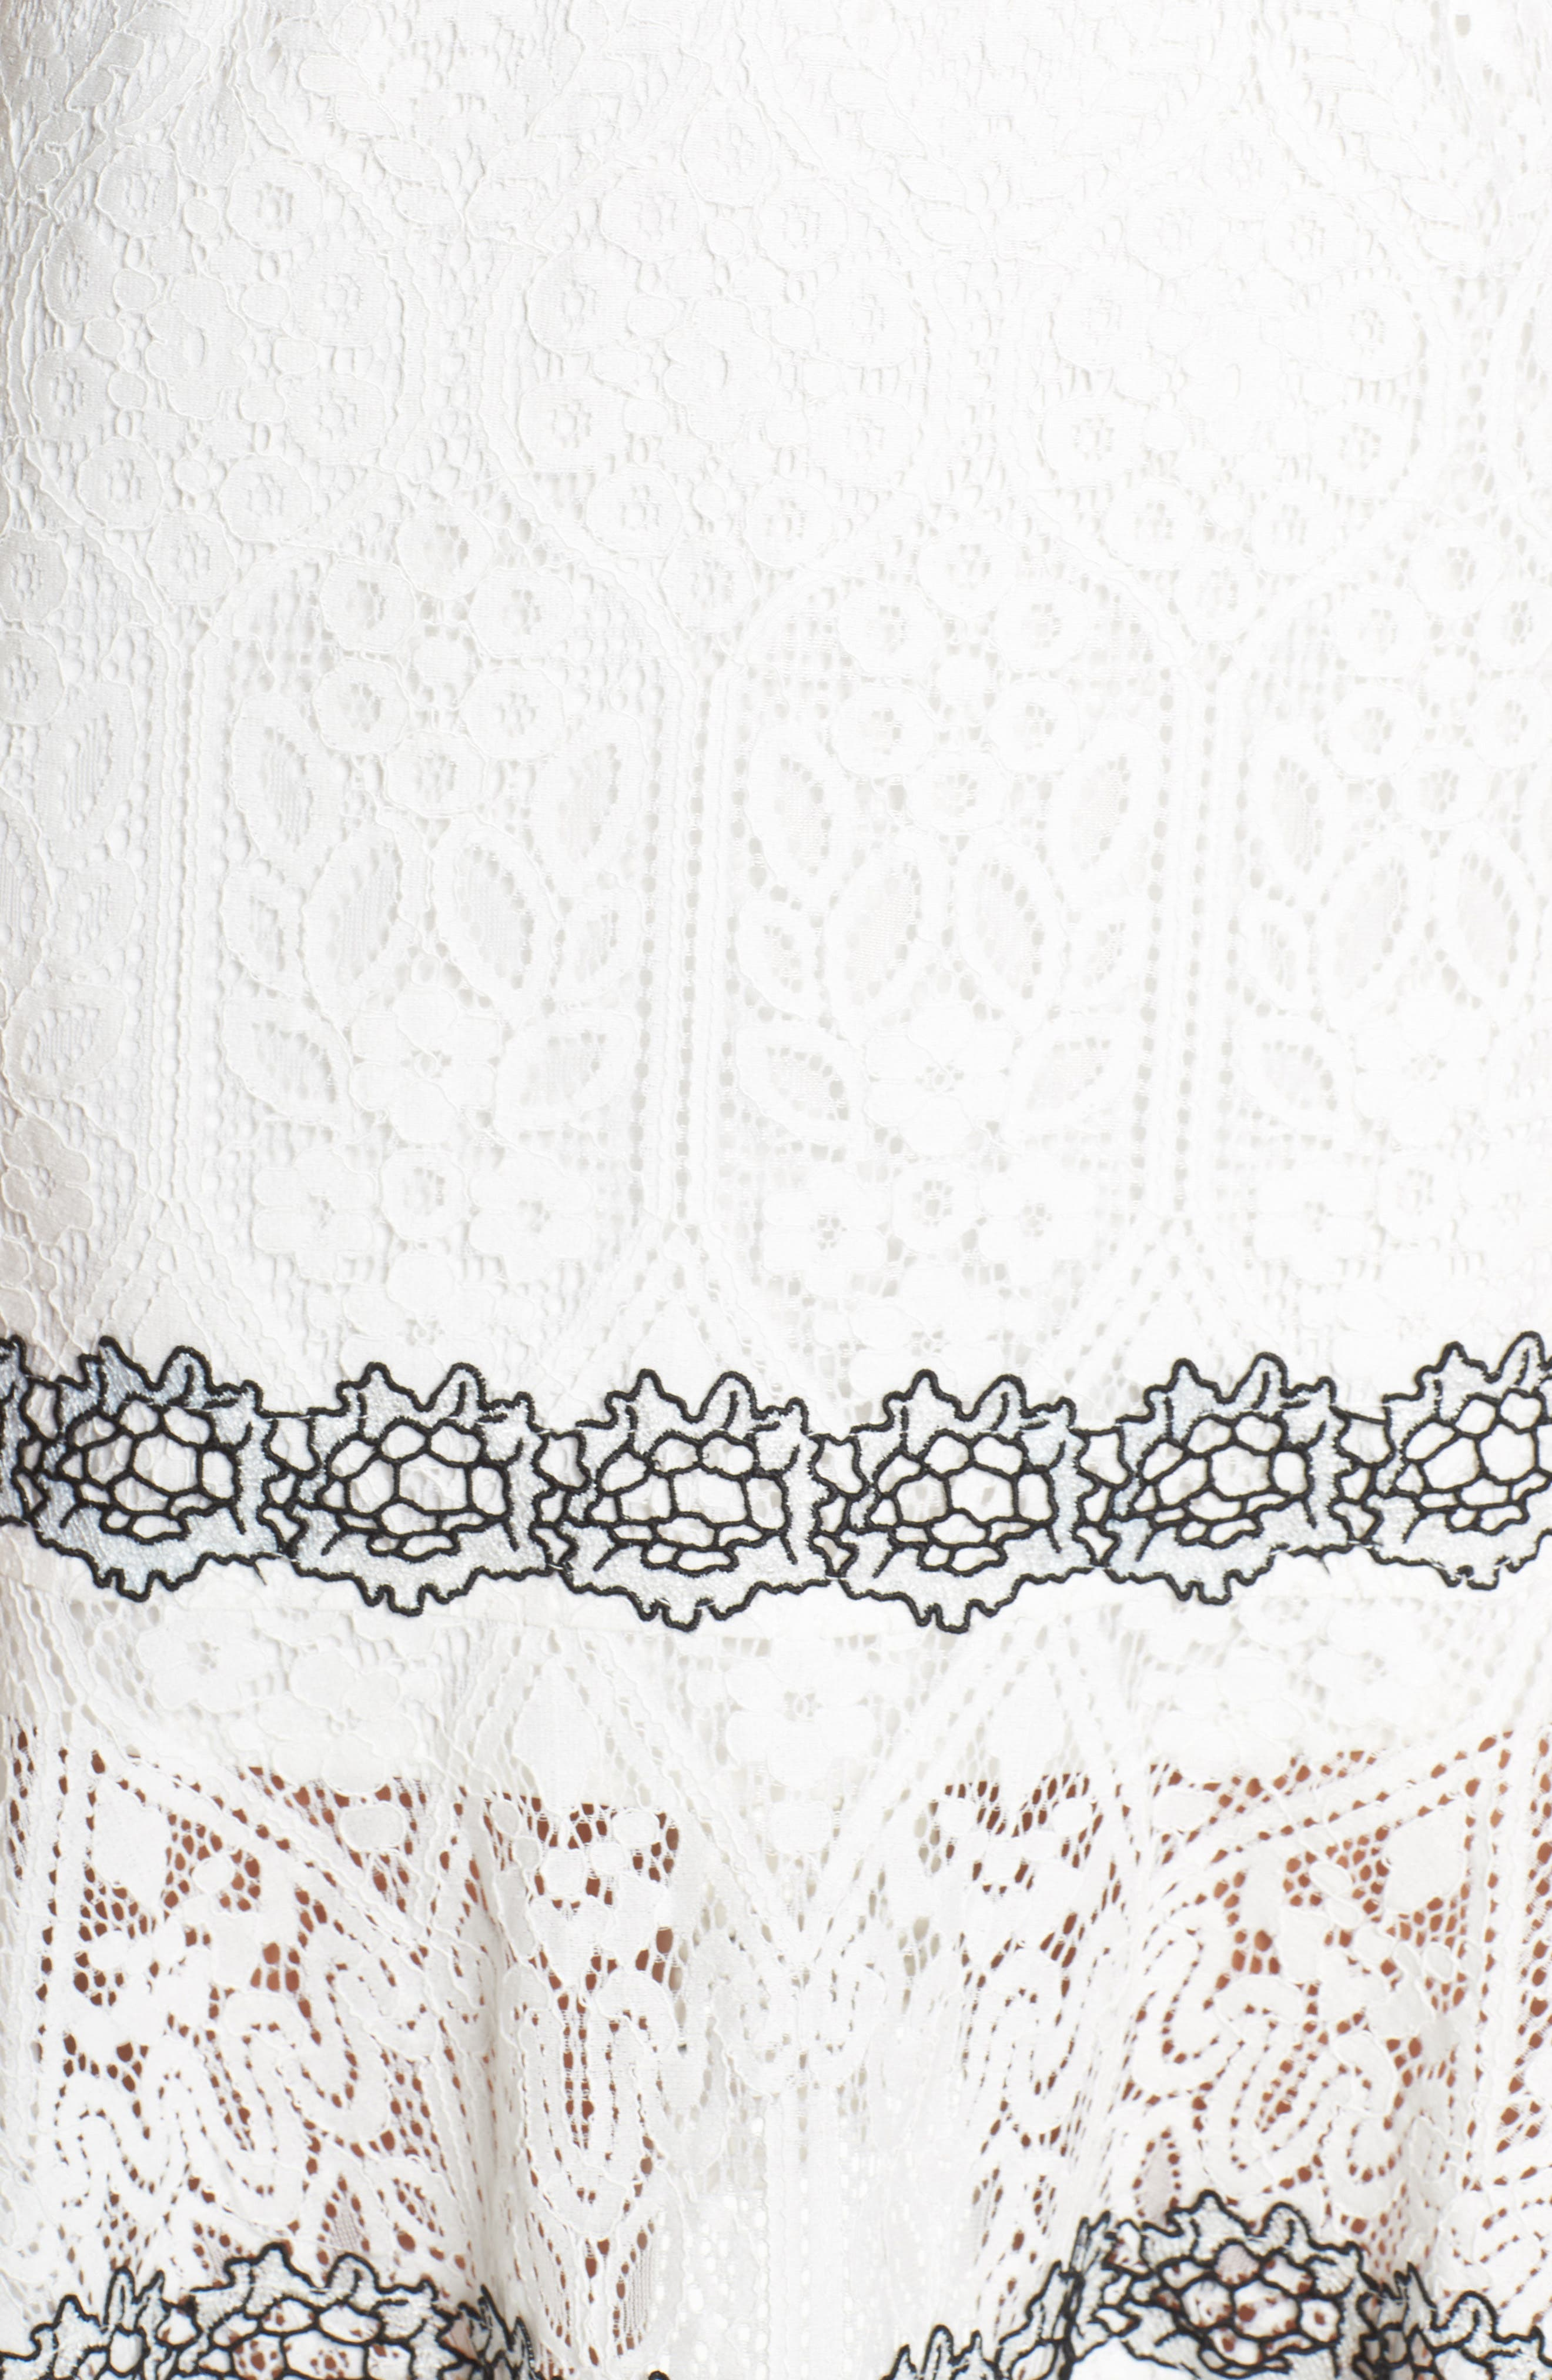 Frances Embroidered Lace Halter Dress,                             Alternate thumbnail 5, color,                             Offwhite